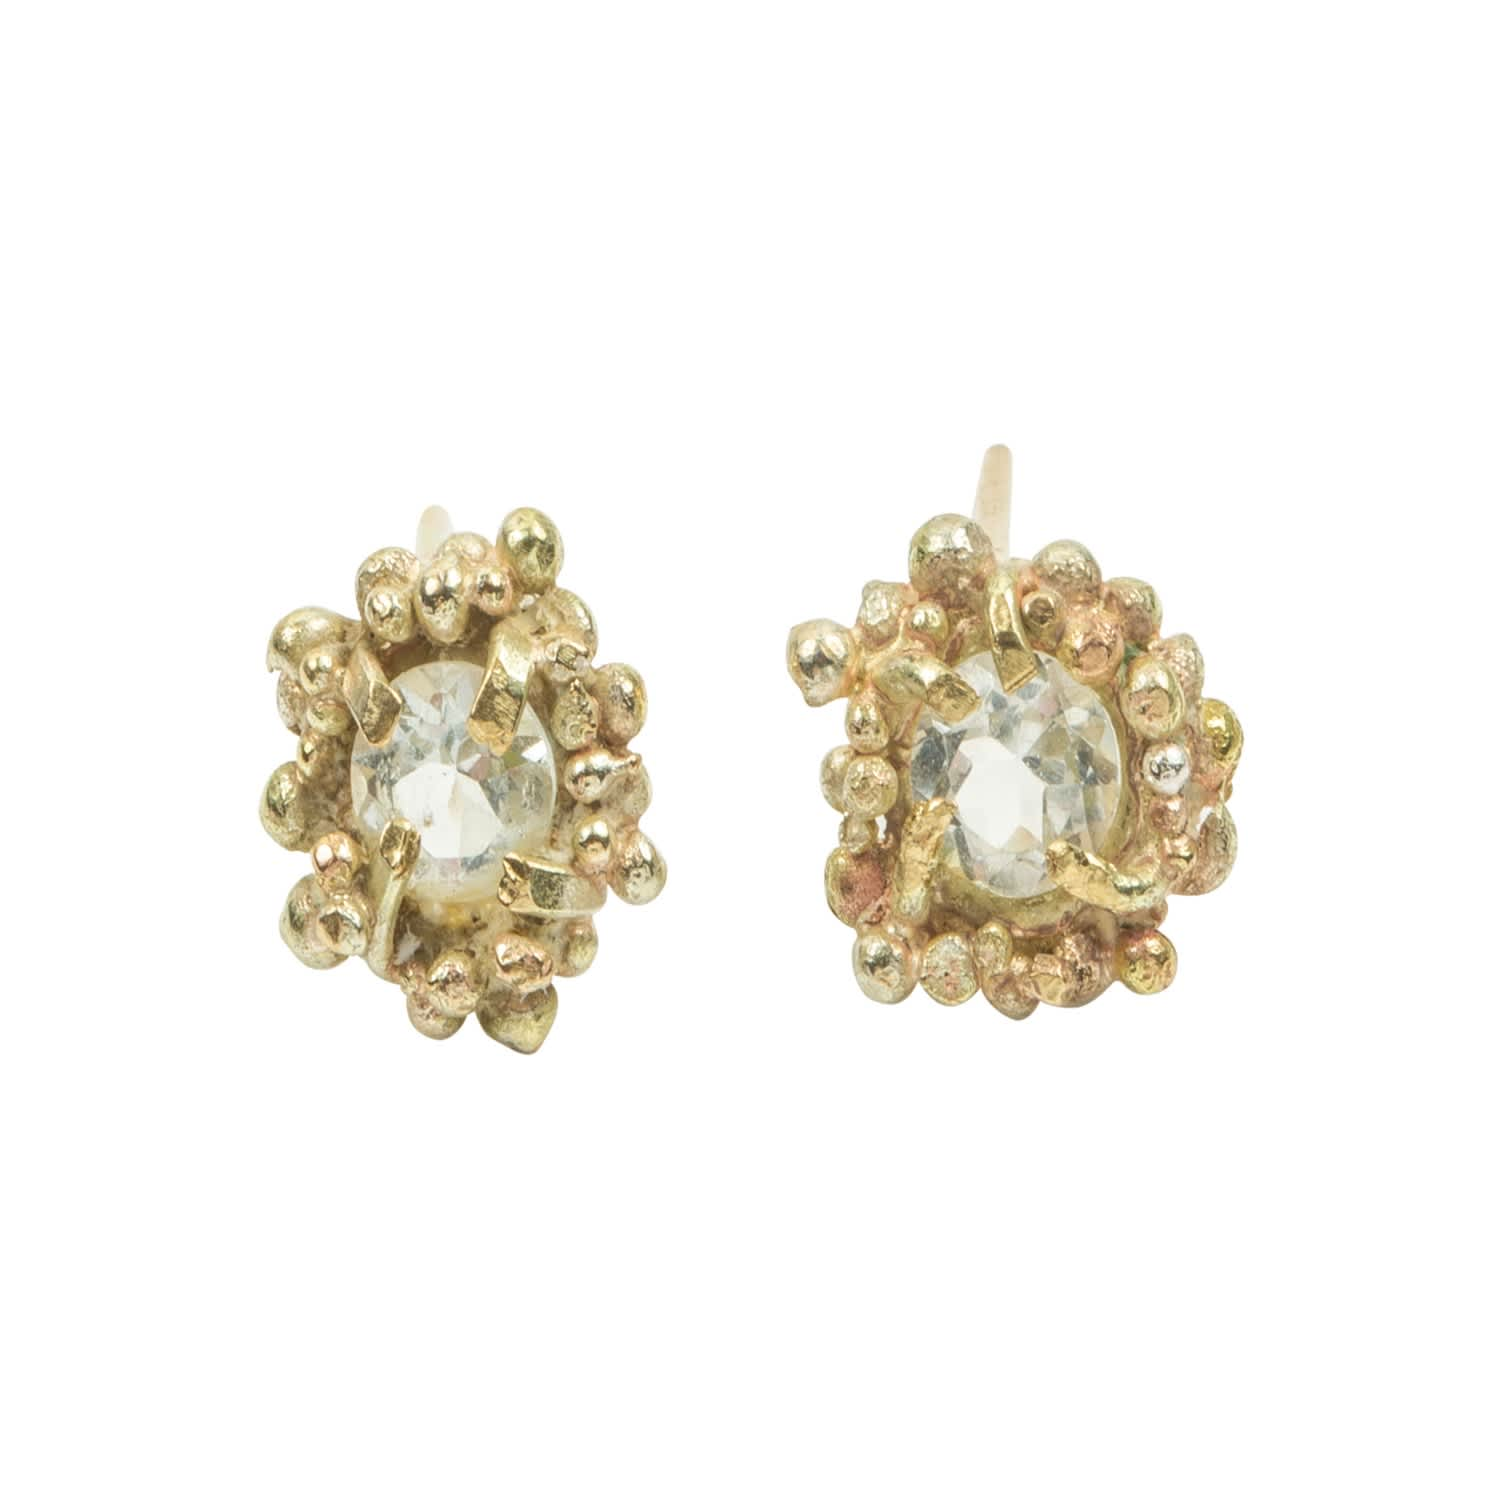 d942b342fdfa7 White Sapphire Solid Gold Stud Earrings by Lily Flo Jewellery